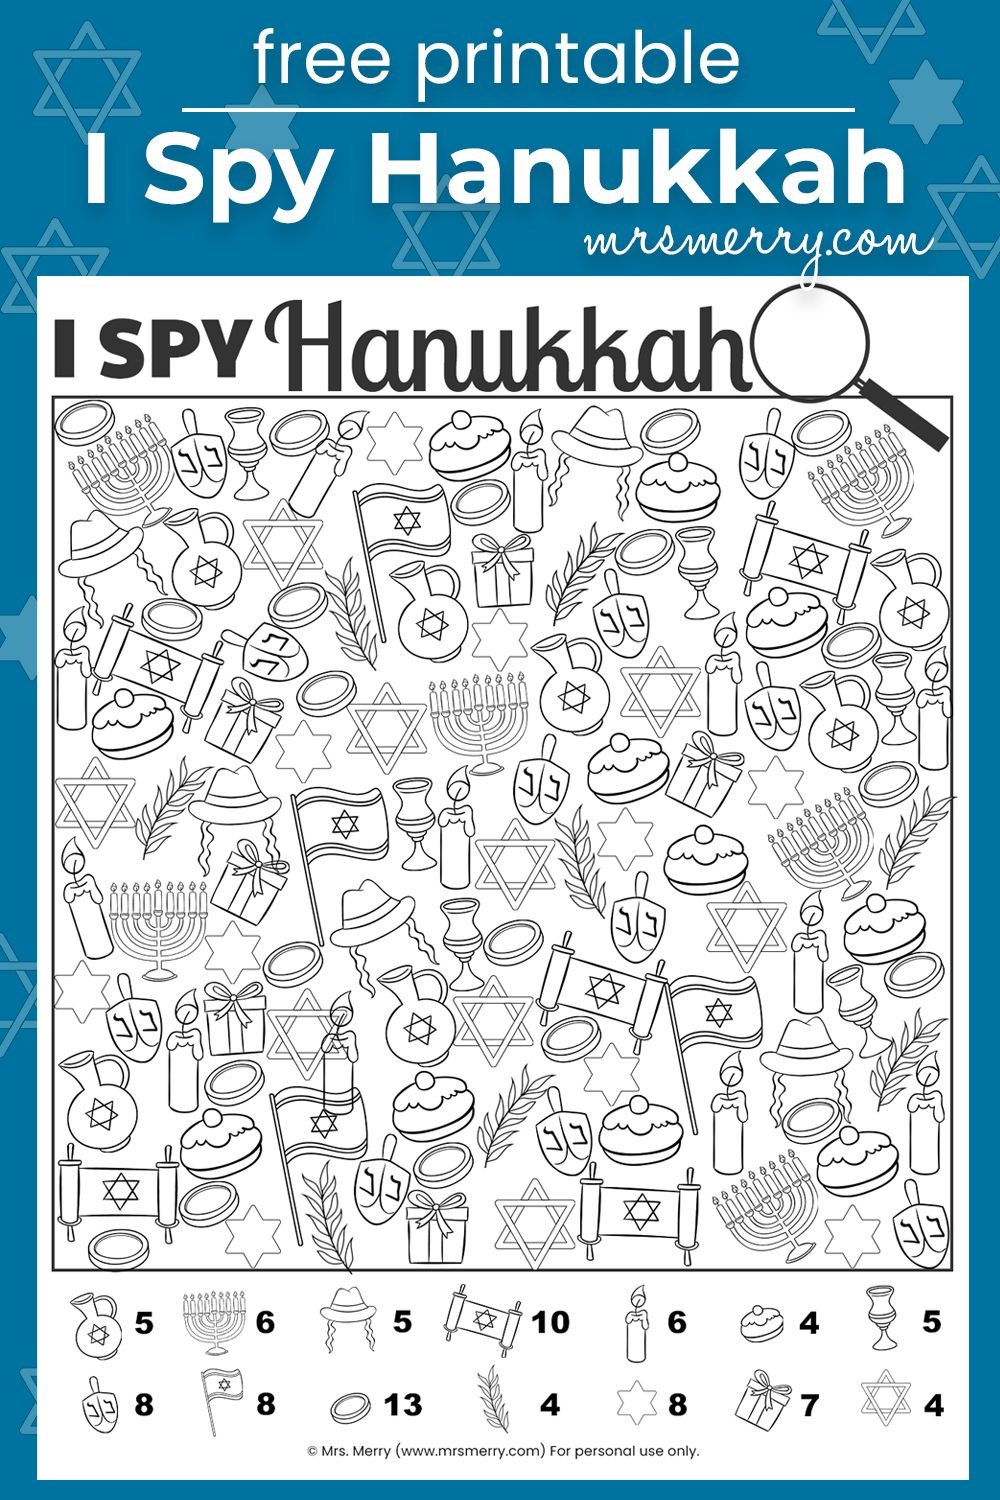 I Spy Hanukkah Free Printable Holiday Games For Kids Mrs Merry Holiday Activities For Kids Printables Free Kids Printable Activities For Kids [ 1500 x 1000 Pixel ]